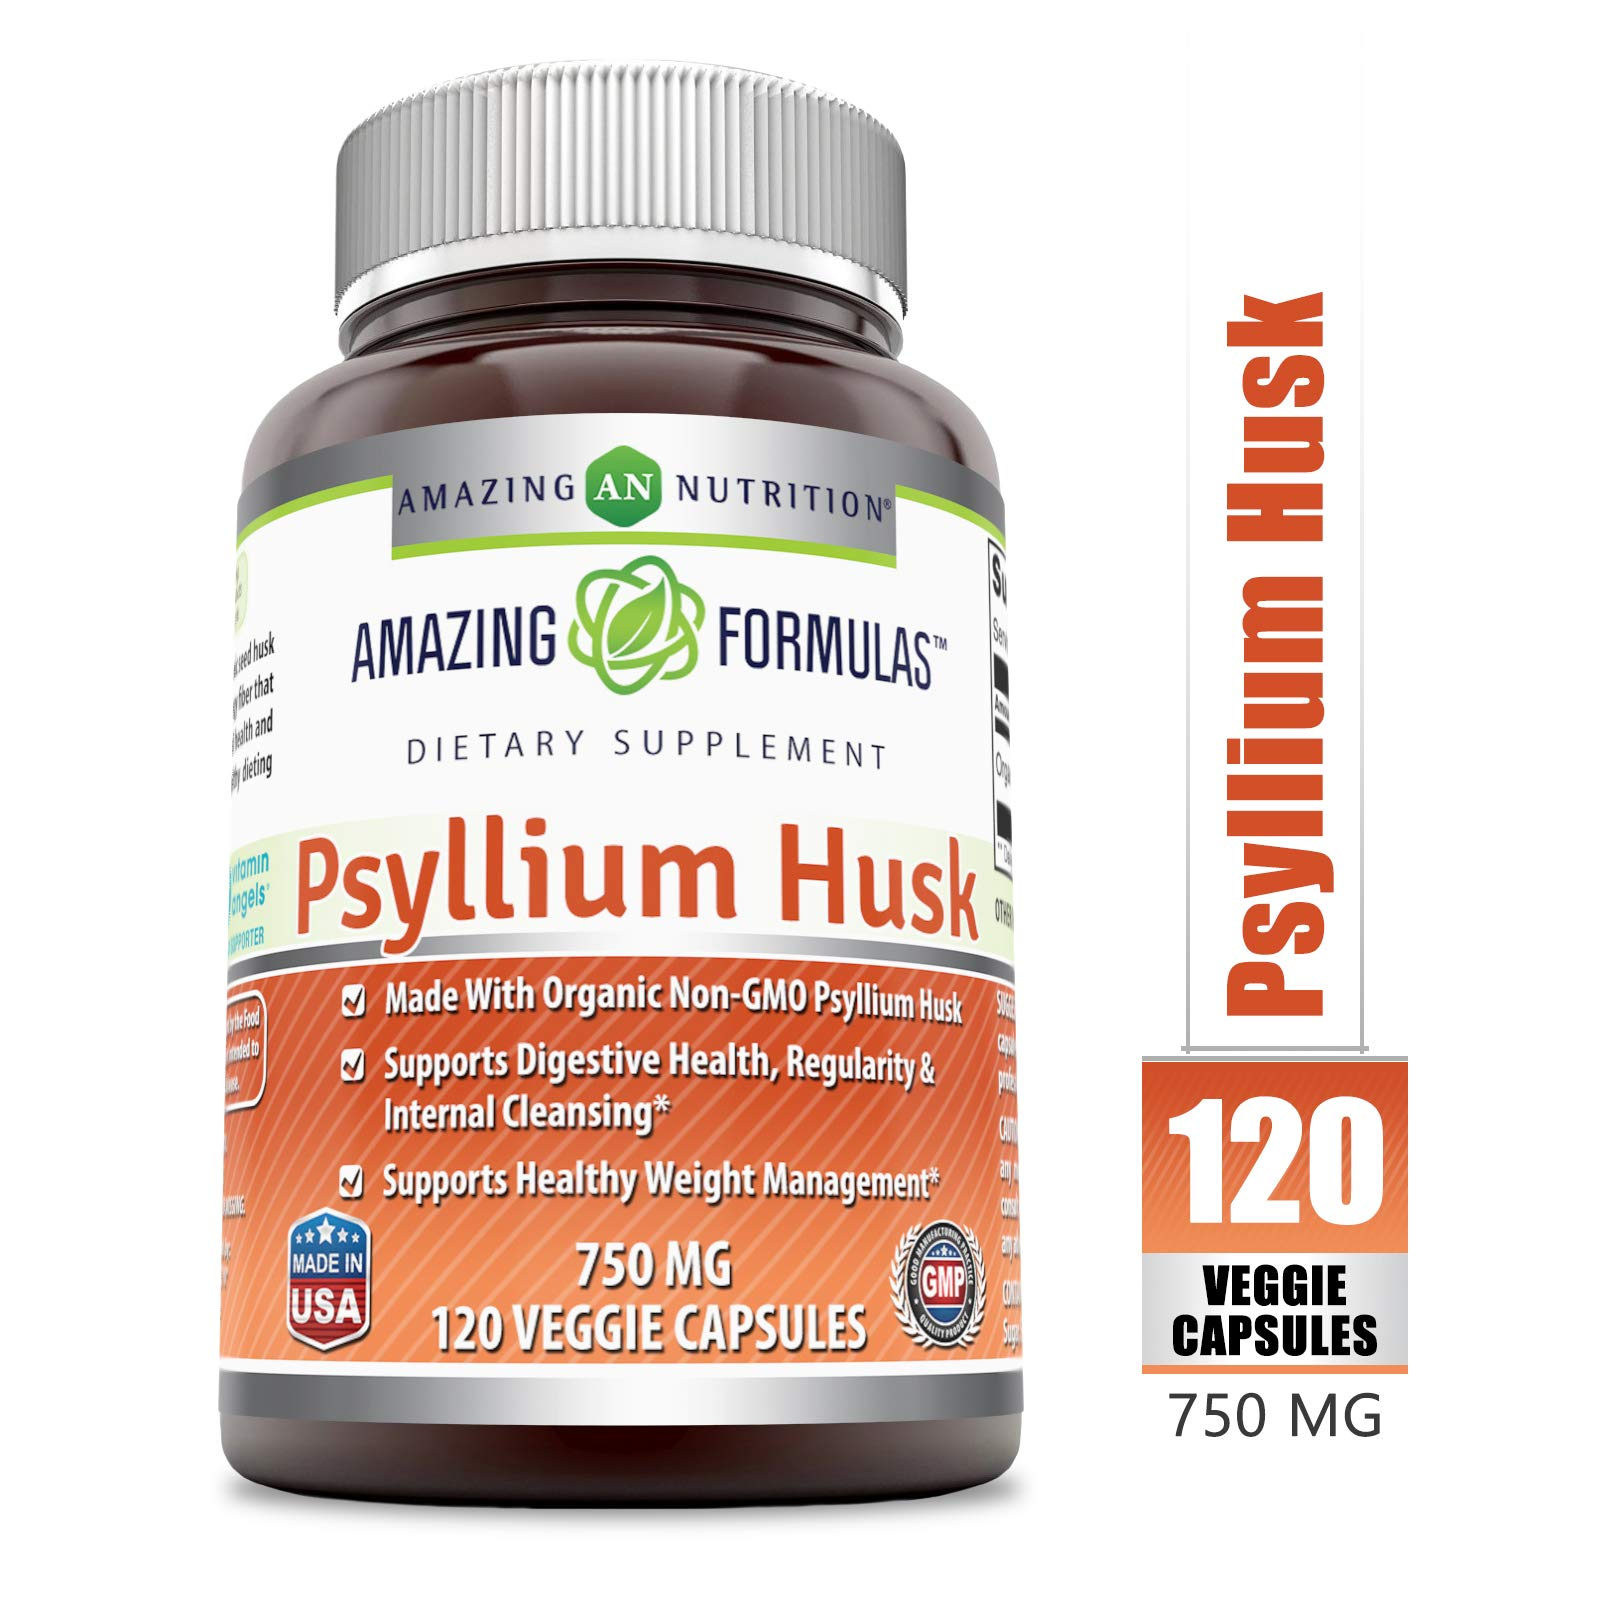 Amazing Formulas Psyllium Husk - 750 Mg, 120 Veggie Capsules - Made with Organic (Non-GMO) Psyllium Husk - Supports Digestive Health, Regularity & Internal Cleansing - Supports Healthy Weight Mana by Amazing Nutrition